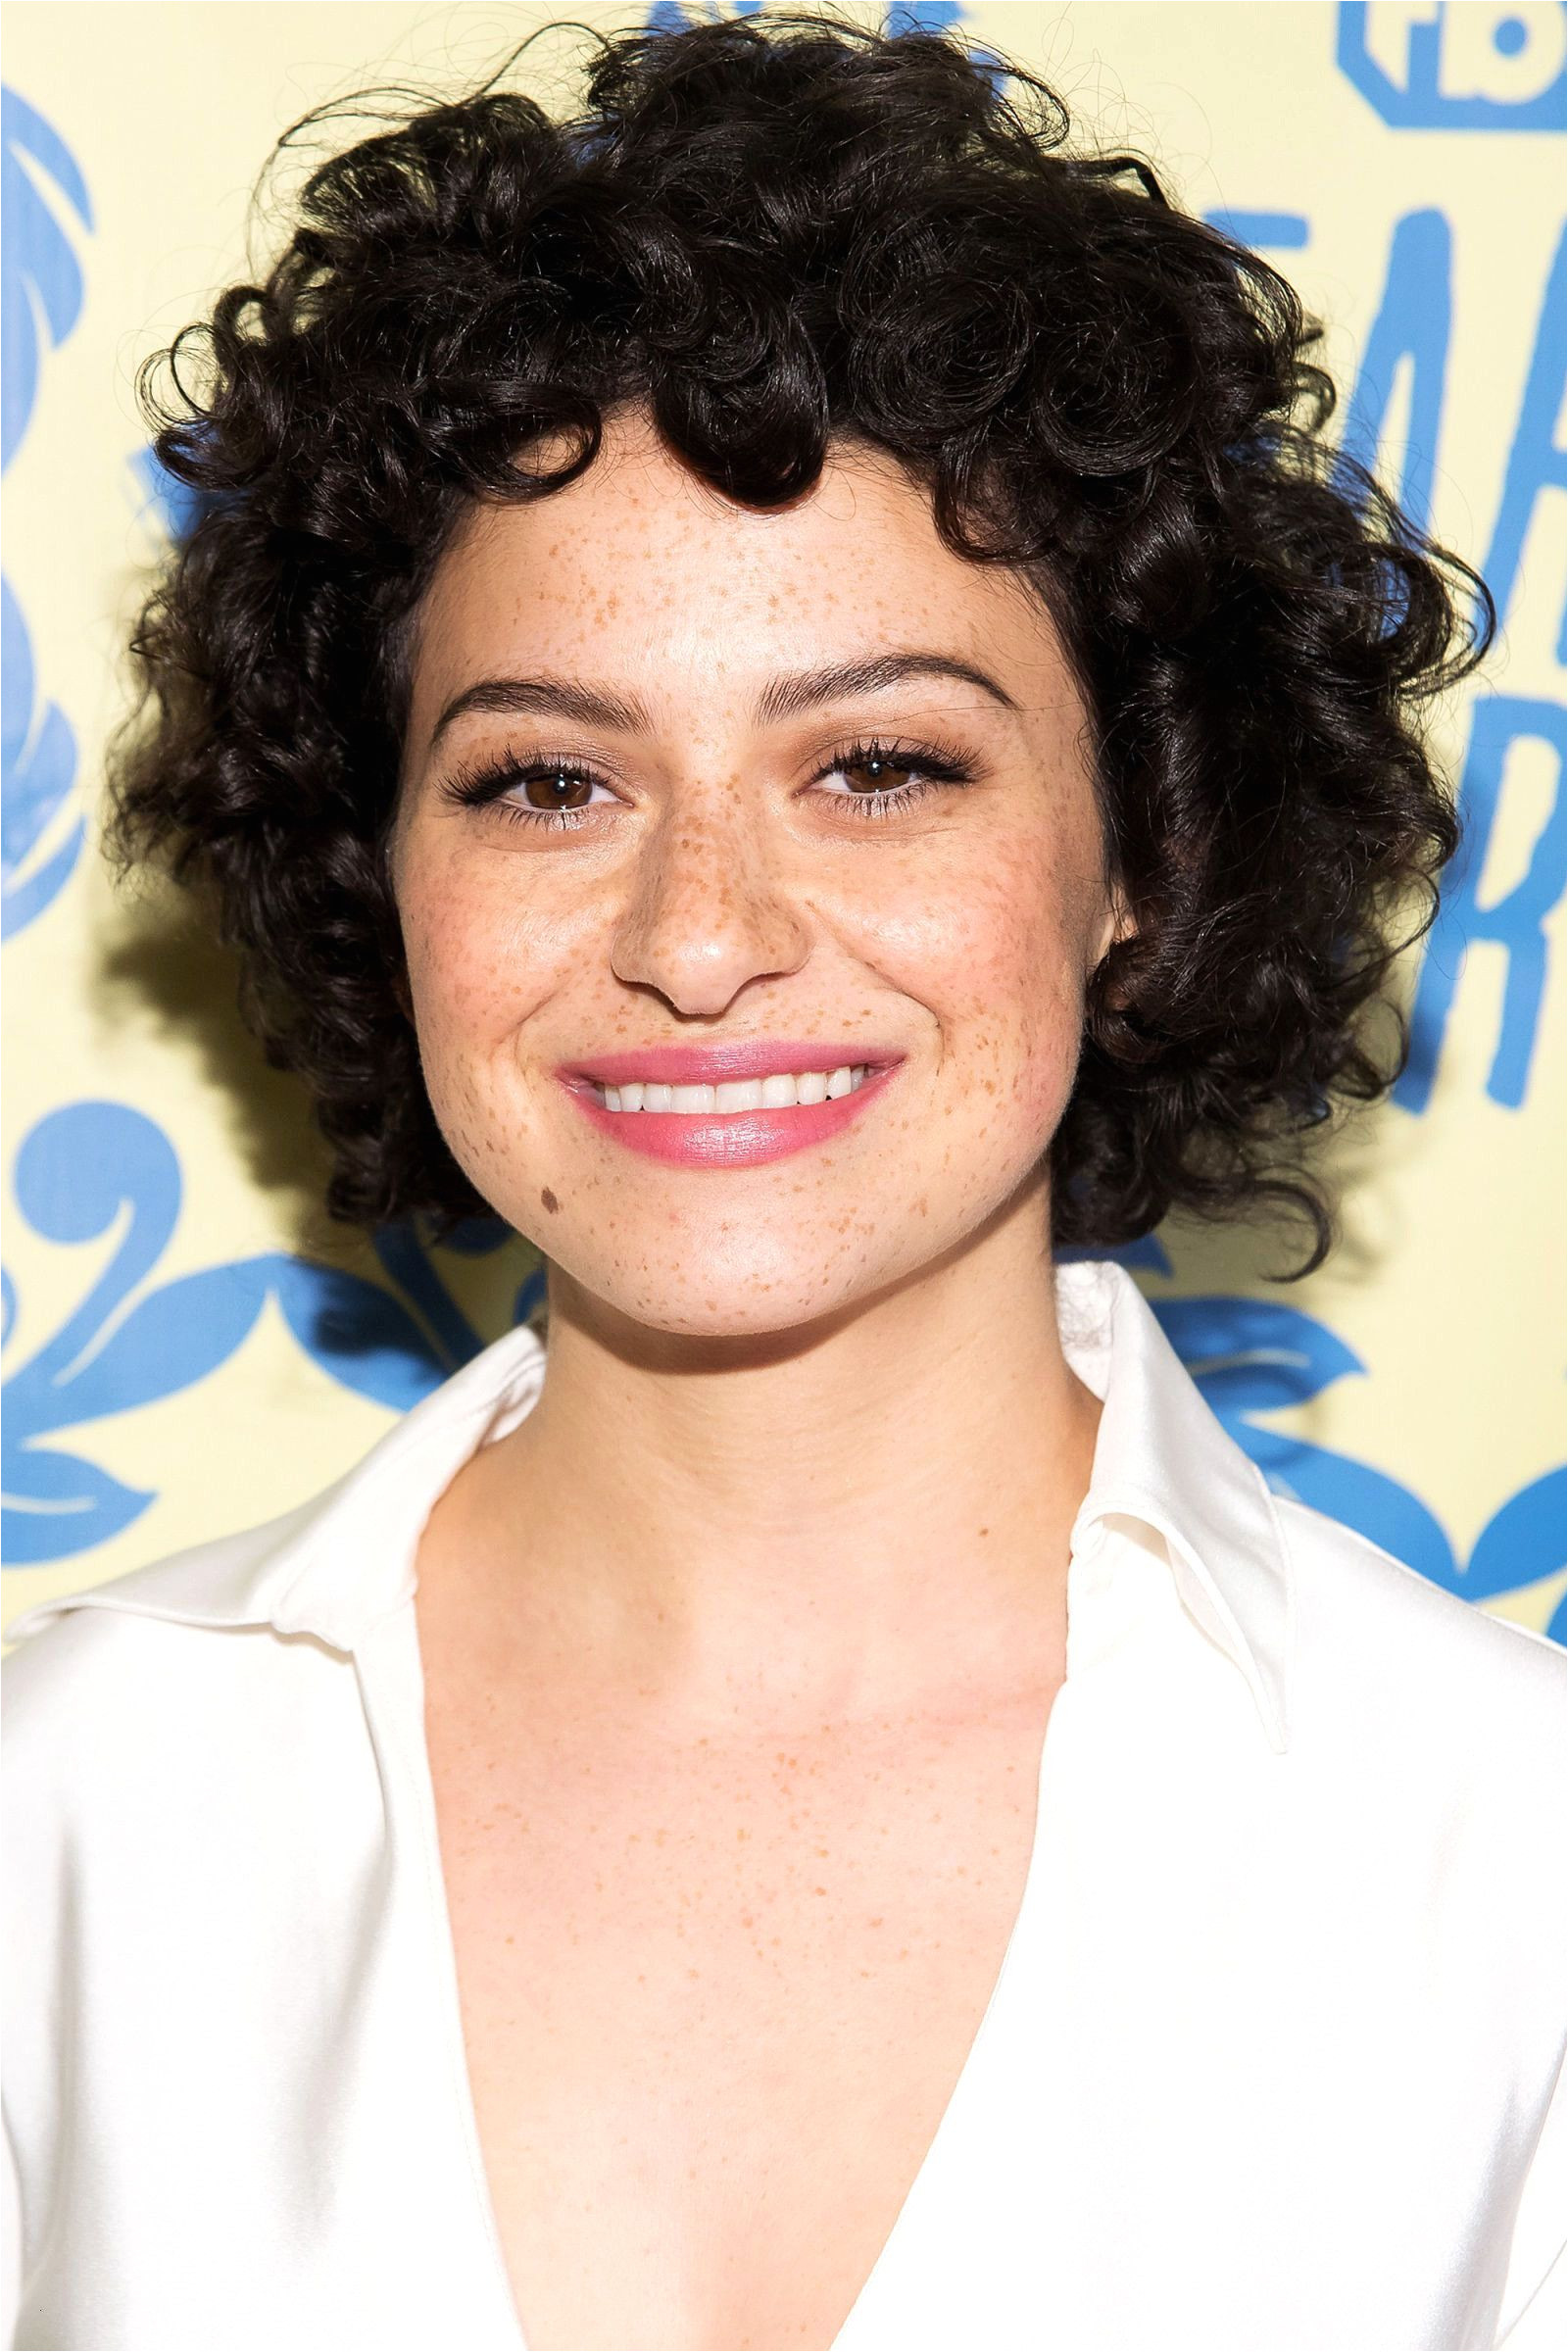 Bob Hairstyles for Black Hair Names Hairstyles New Very Curly Hairstyles Fresh Curly Hair 0d